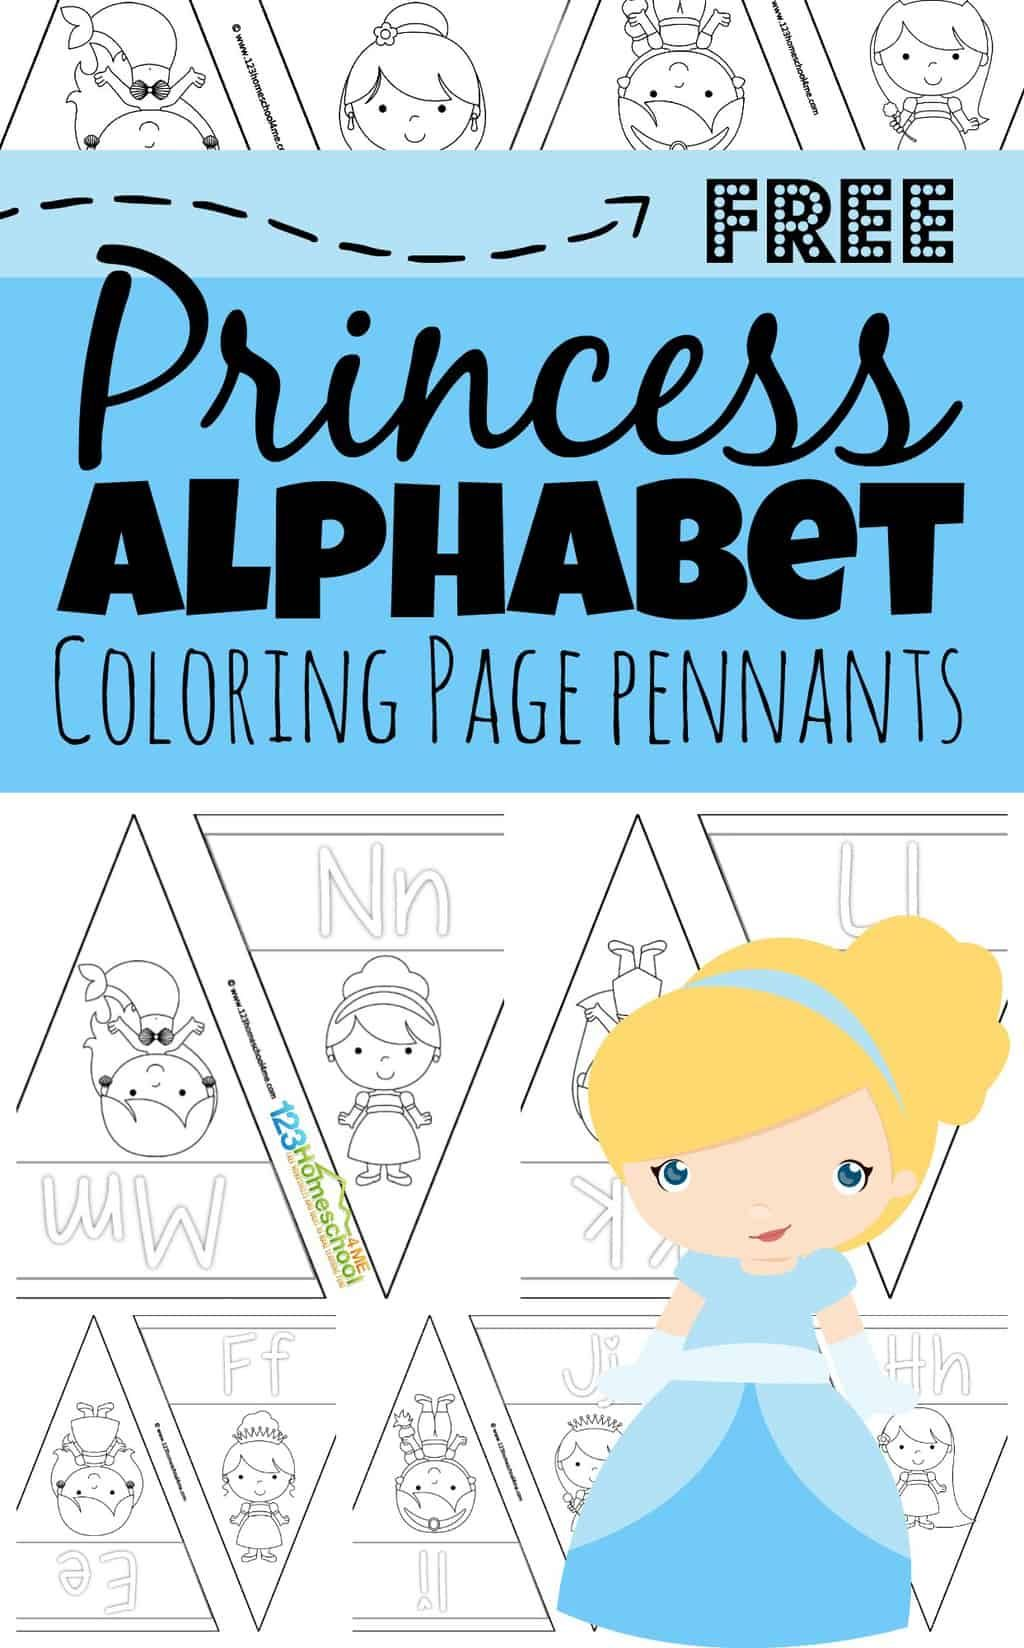 Disney Princess Alphabet Coloring Pages Pennants In